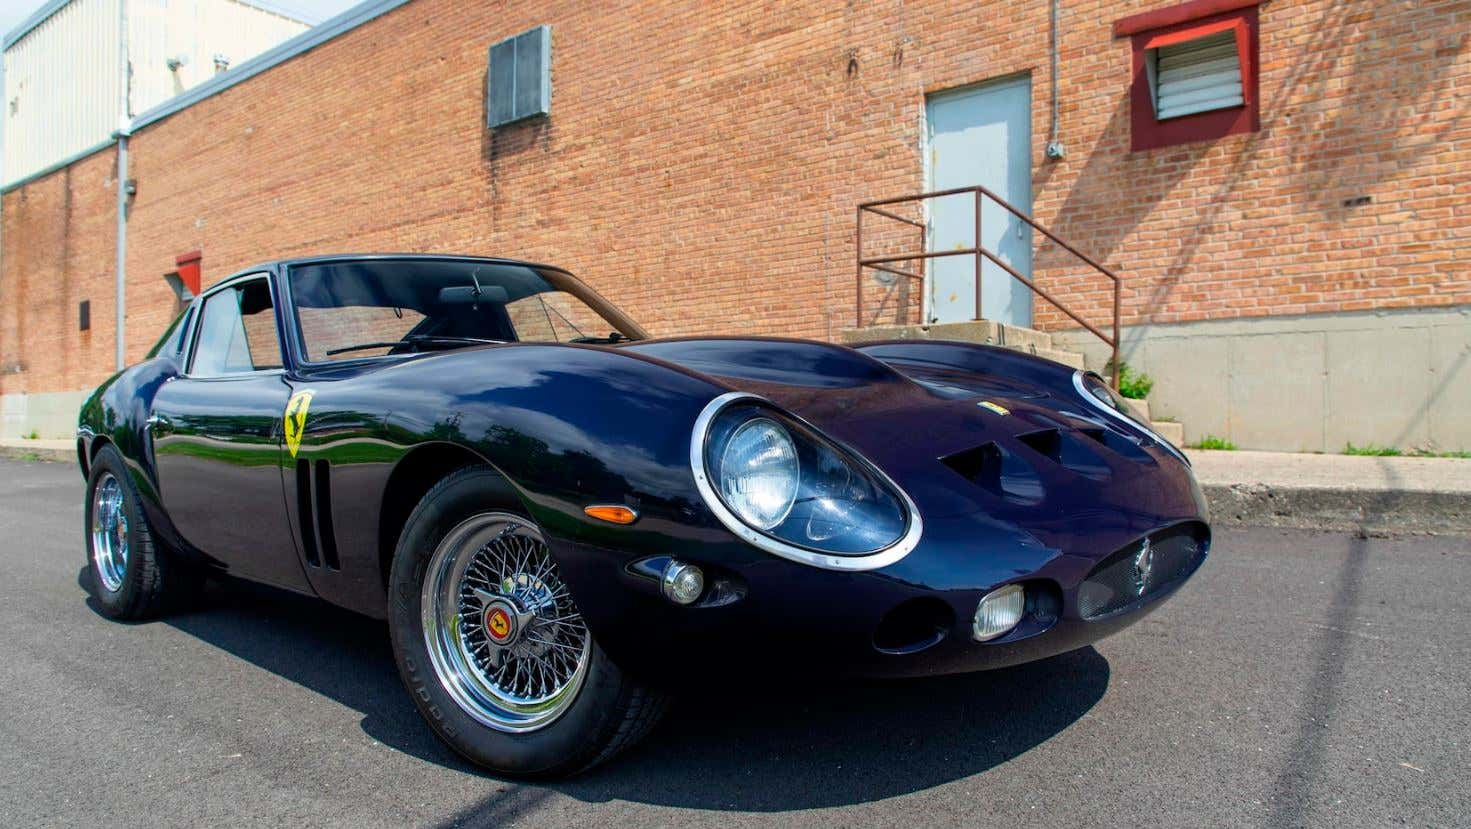 Ferrari 250 Gto Replica Driven By Tom Cruise In Vanilla Sky Heads To Auction